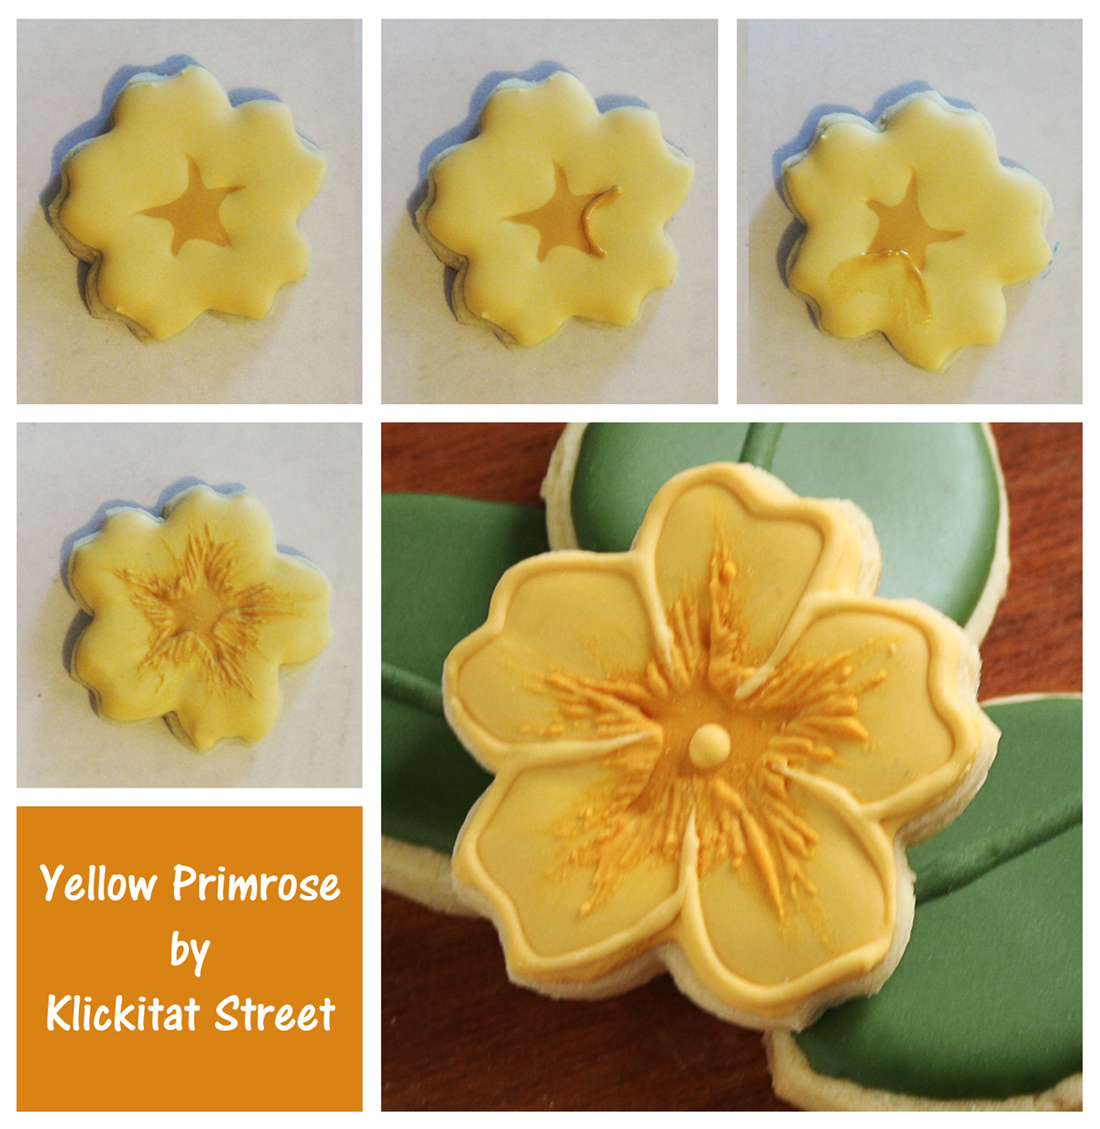 brush embroidery decorated sugar cookies iced to look like yellow primrose flowers by Klickitat Street